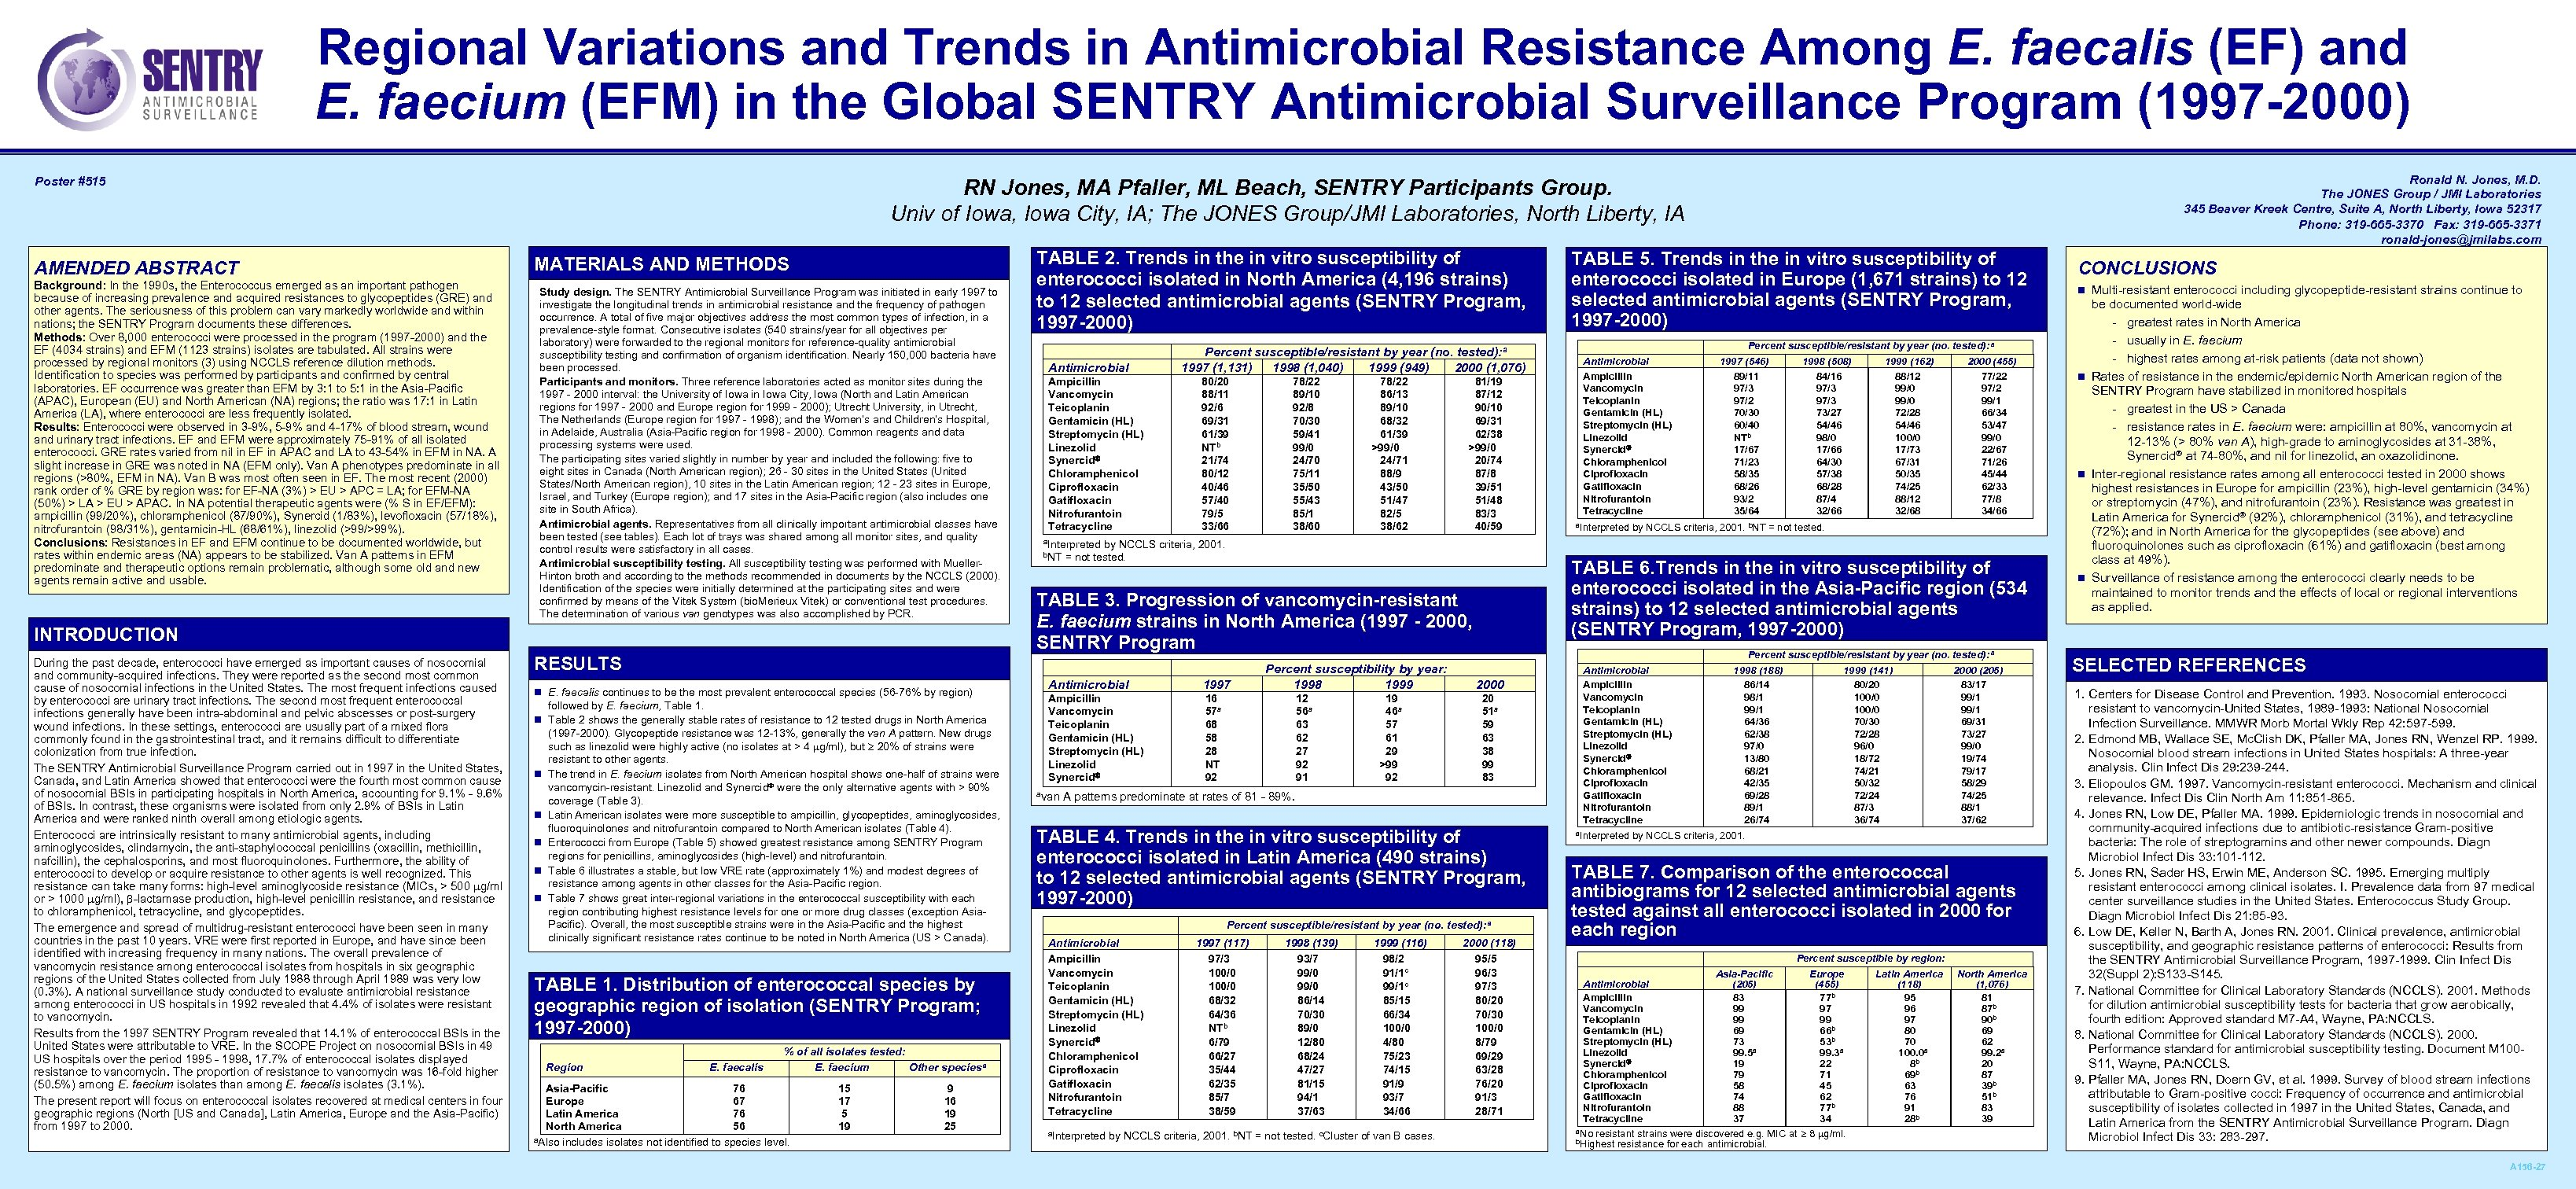 Regional Variations and Trends in Antimicrobial Resistance Among E. faecalis (EF) and E. faecium